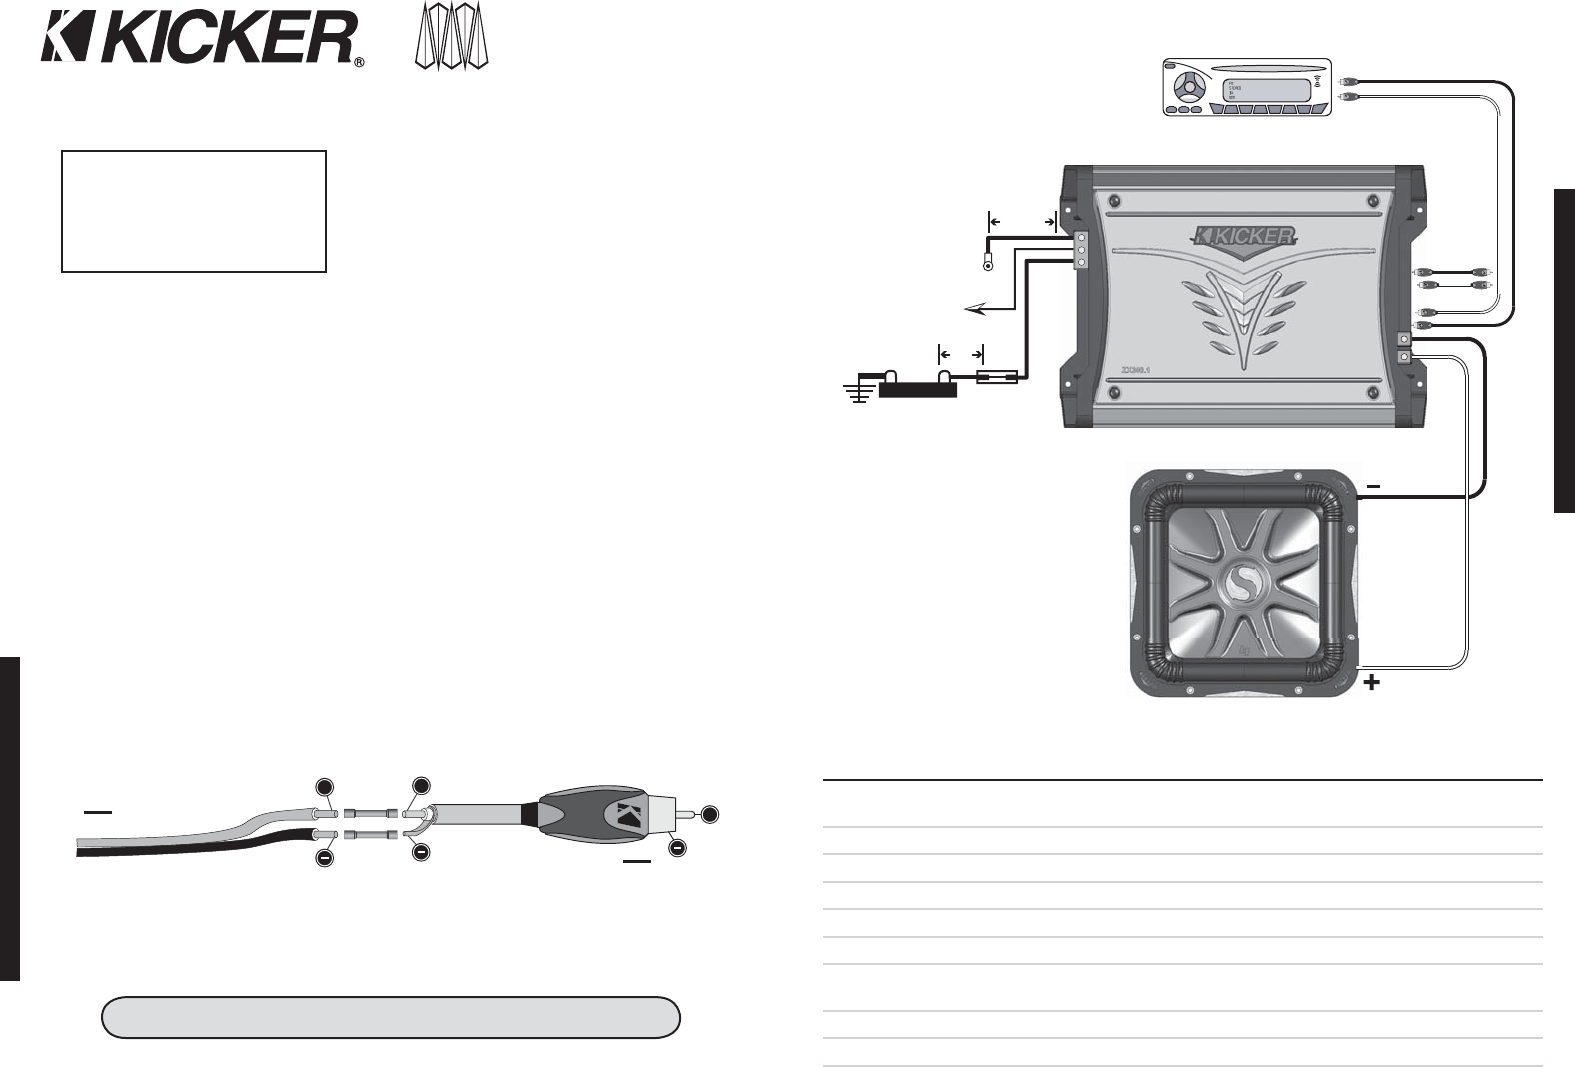 Kicker 750 1   Schematic on kicker l7 wiring diagram